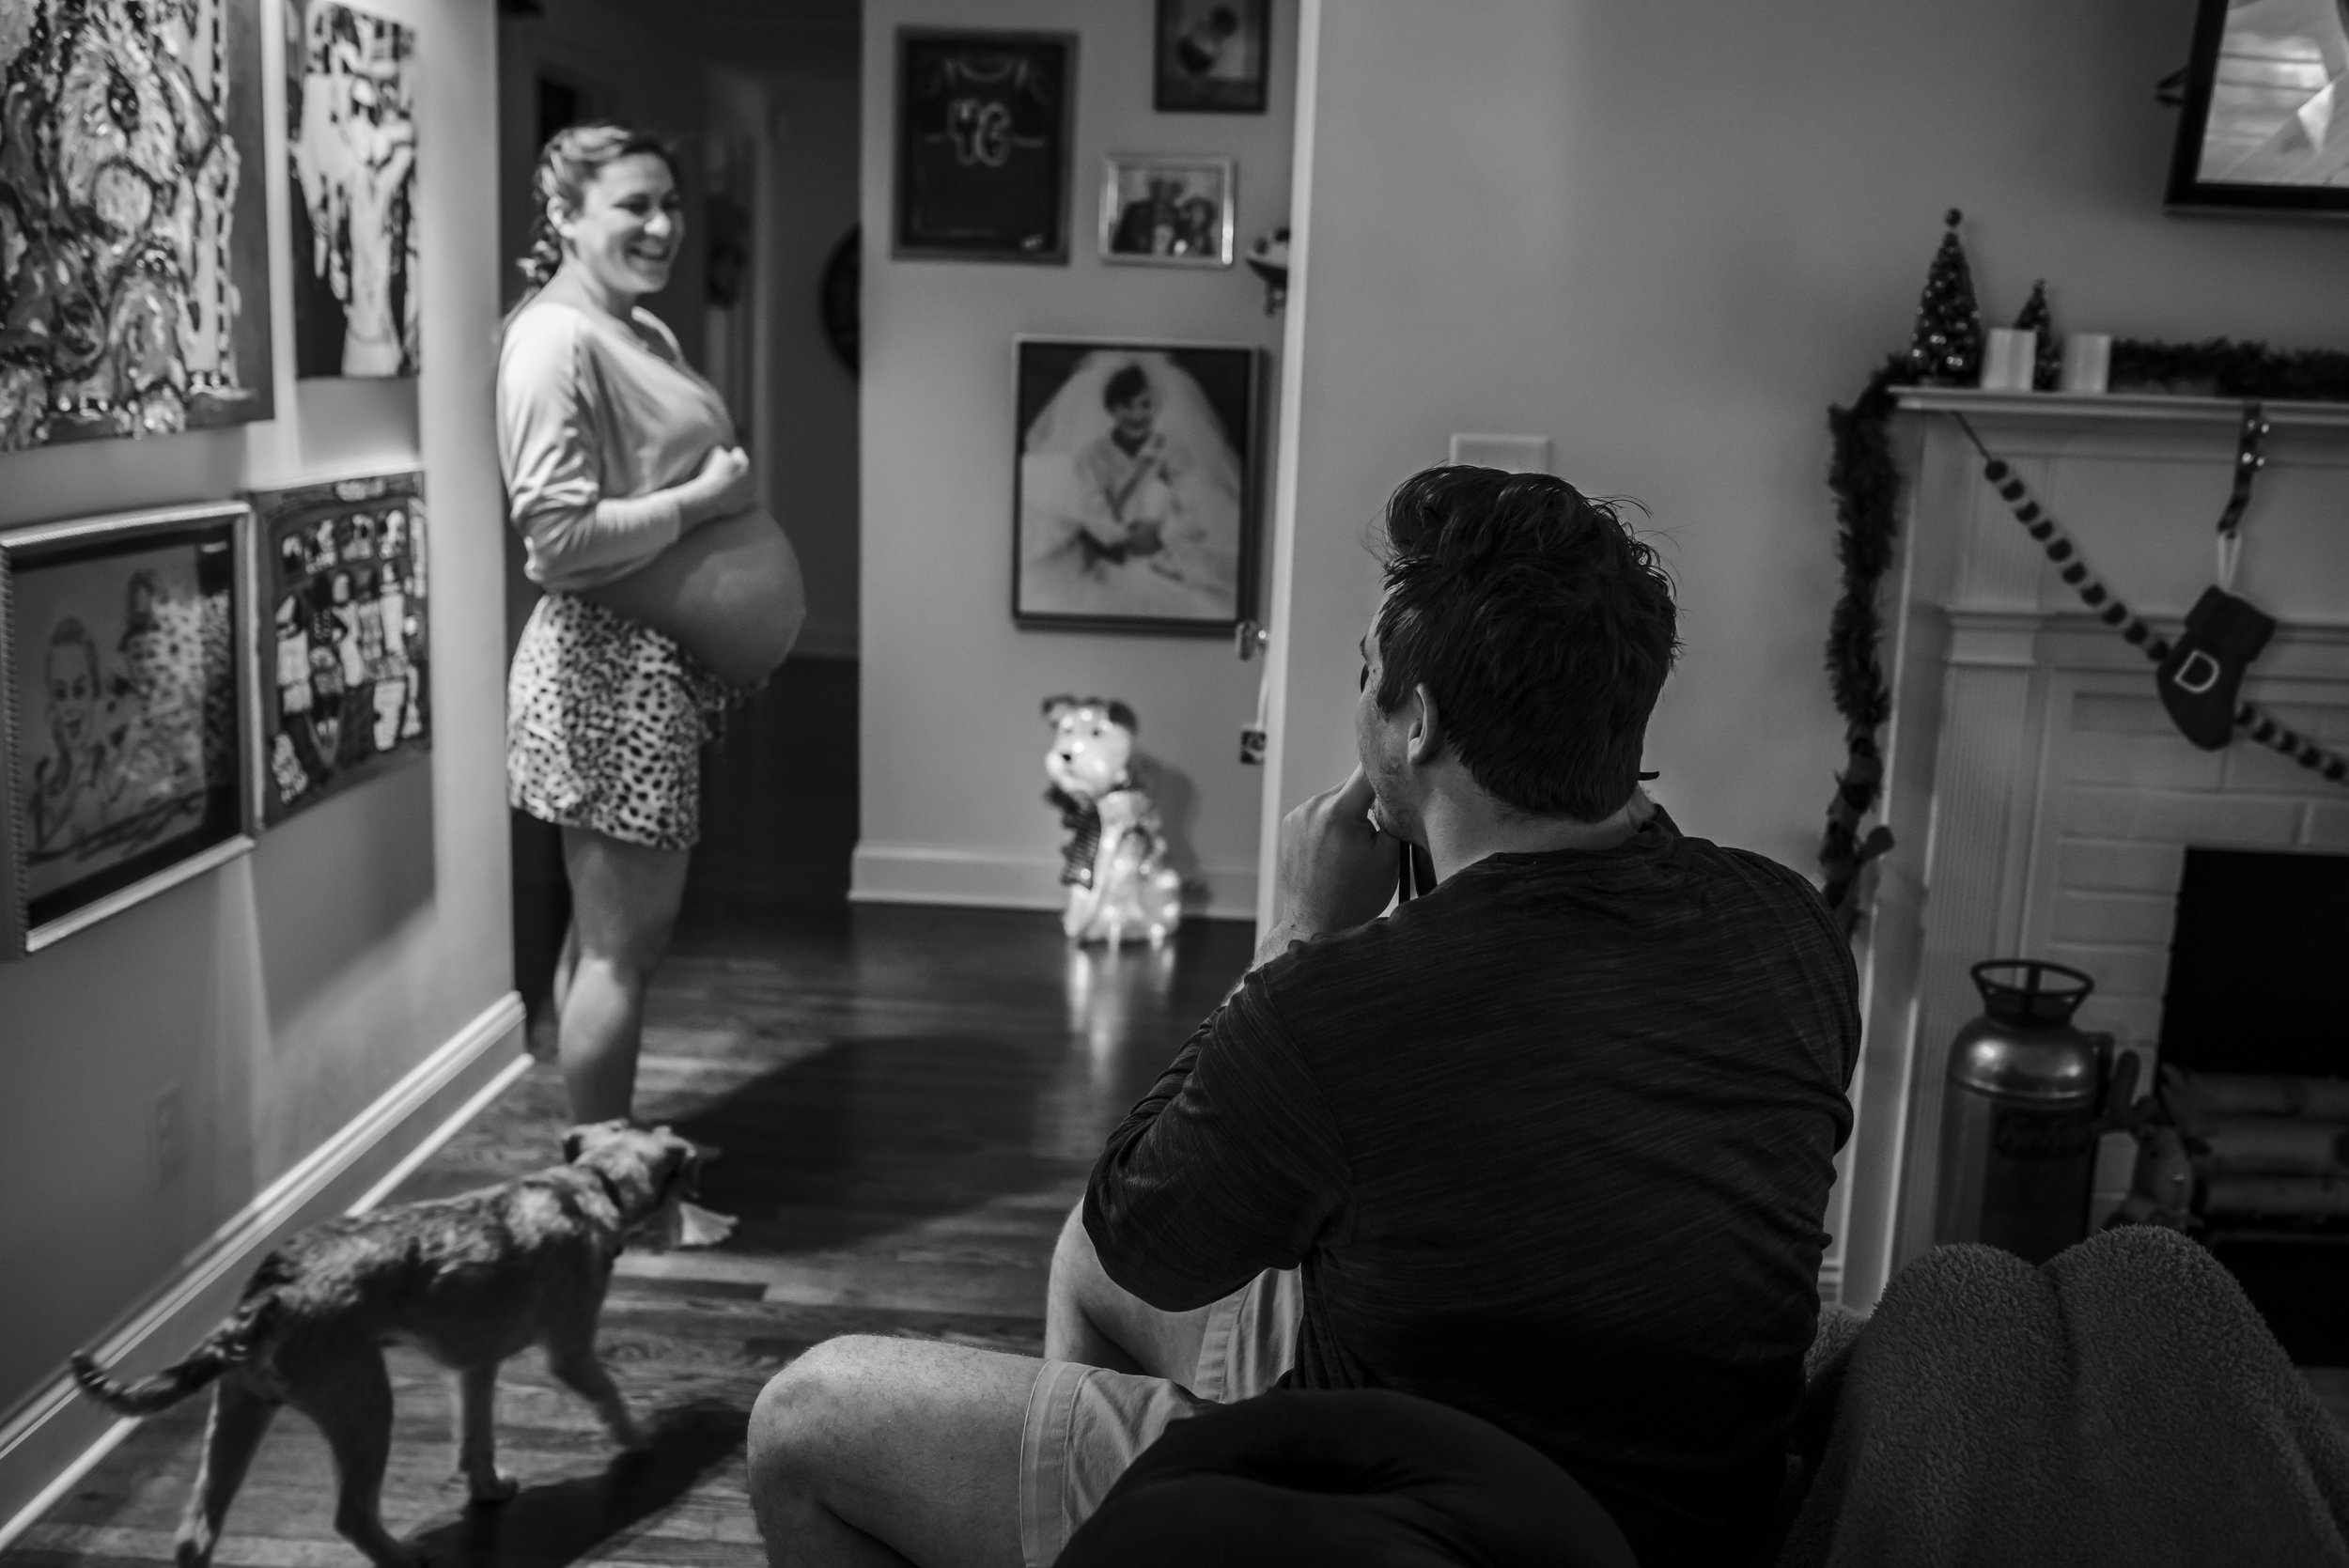 New dad takes picture of his pregnant wife at 40 weeks gestation.